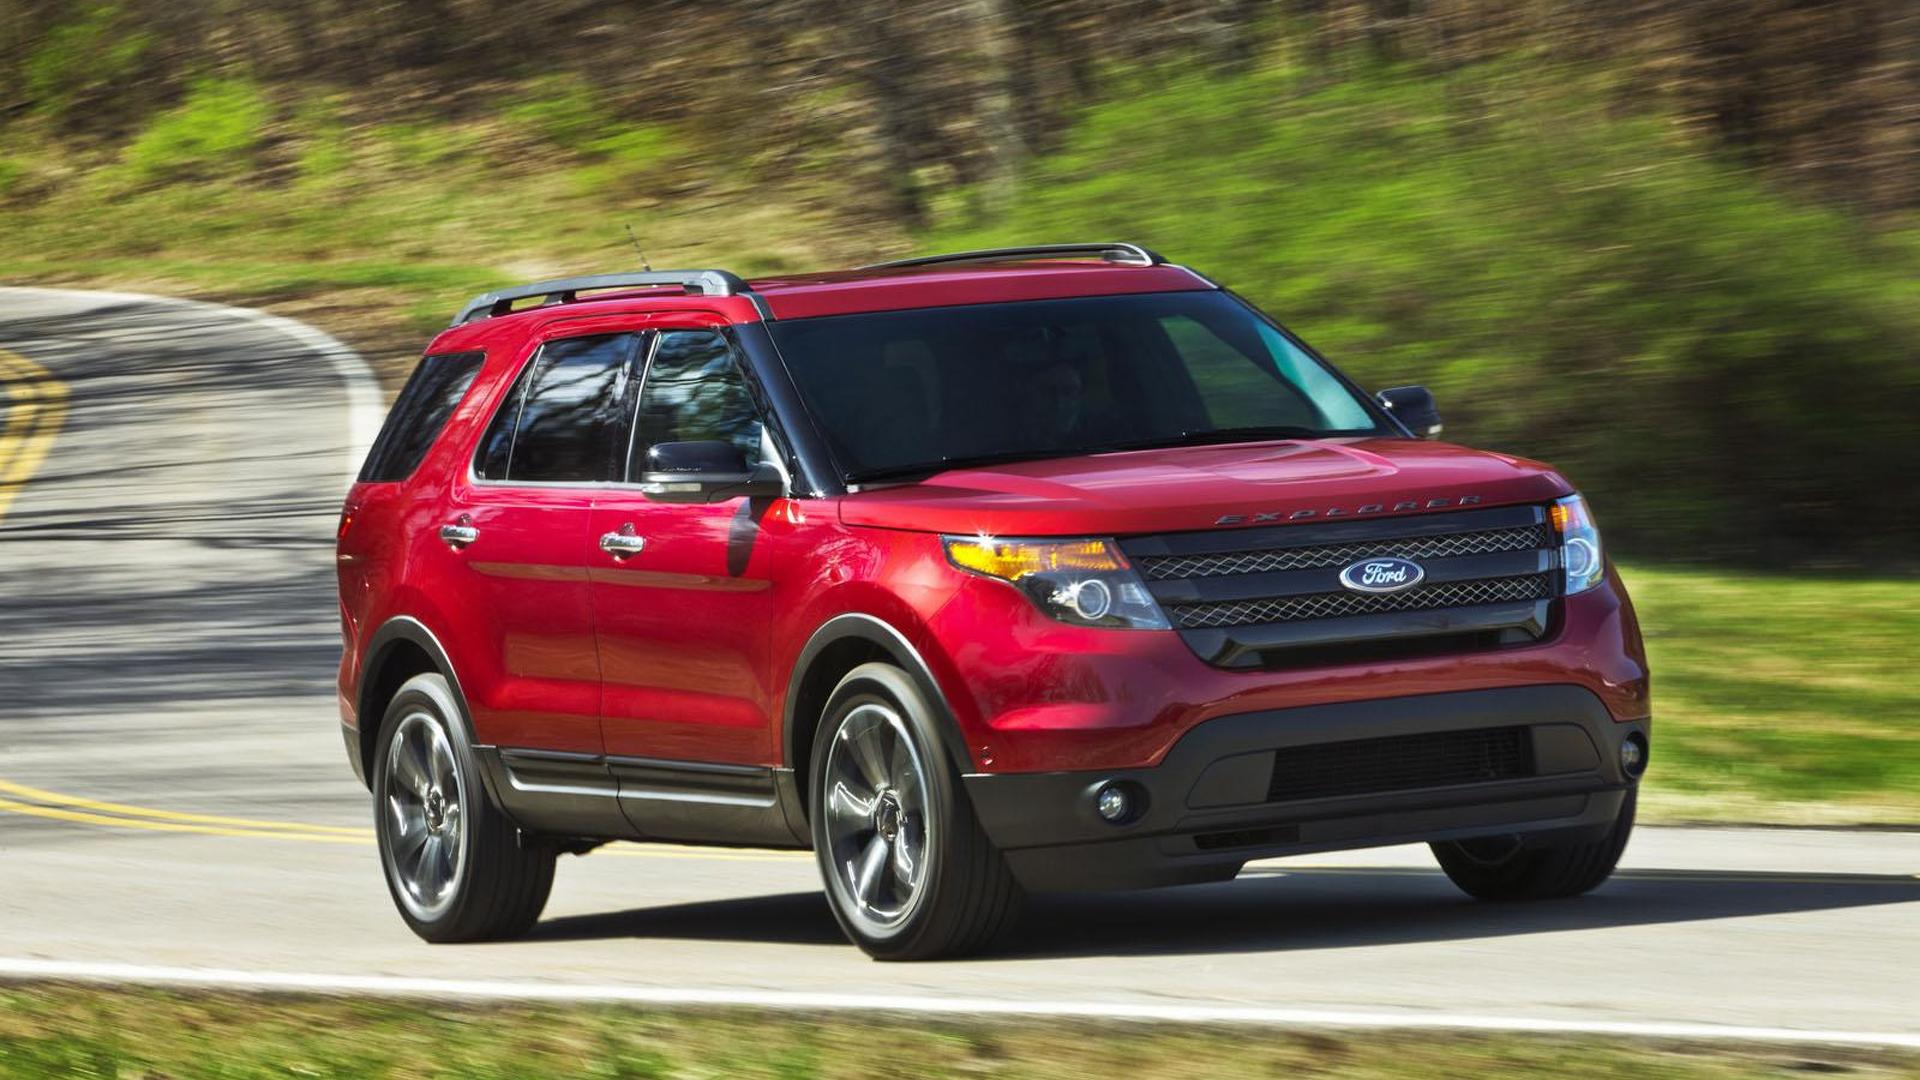 Ford Explorer Exhaust Leak >> 2011 15 Ford Explorer Under Investigation For Exhaust Leak